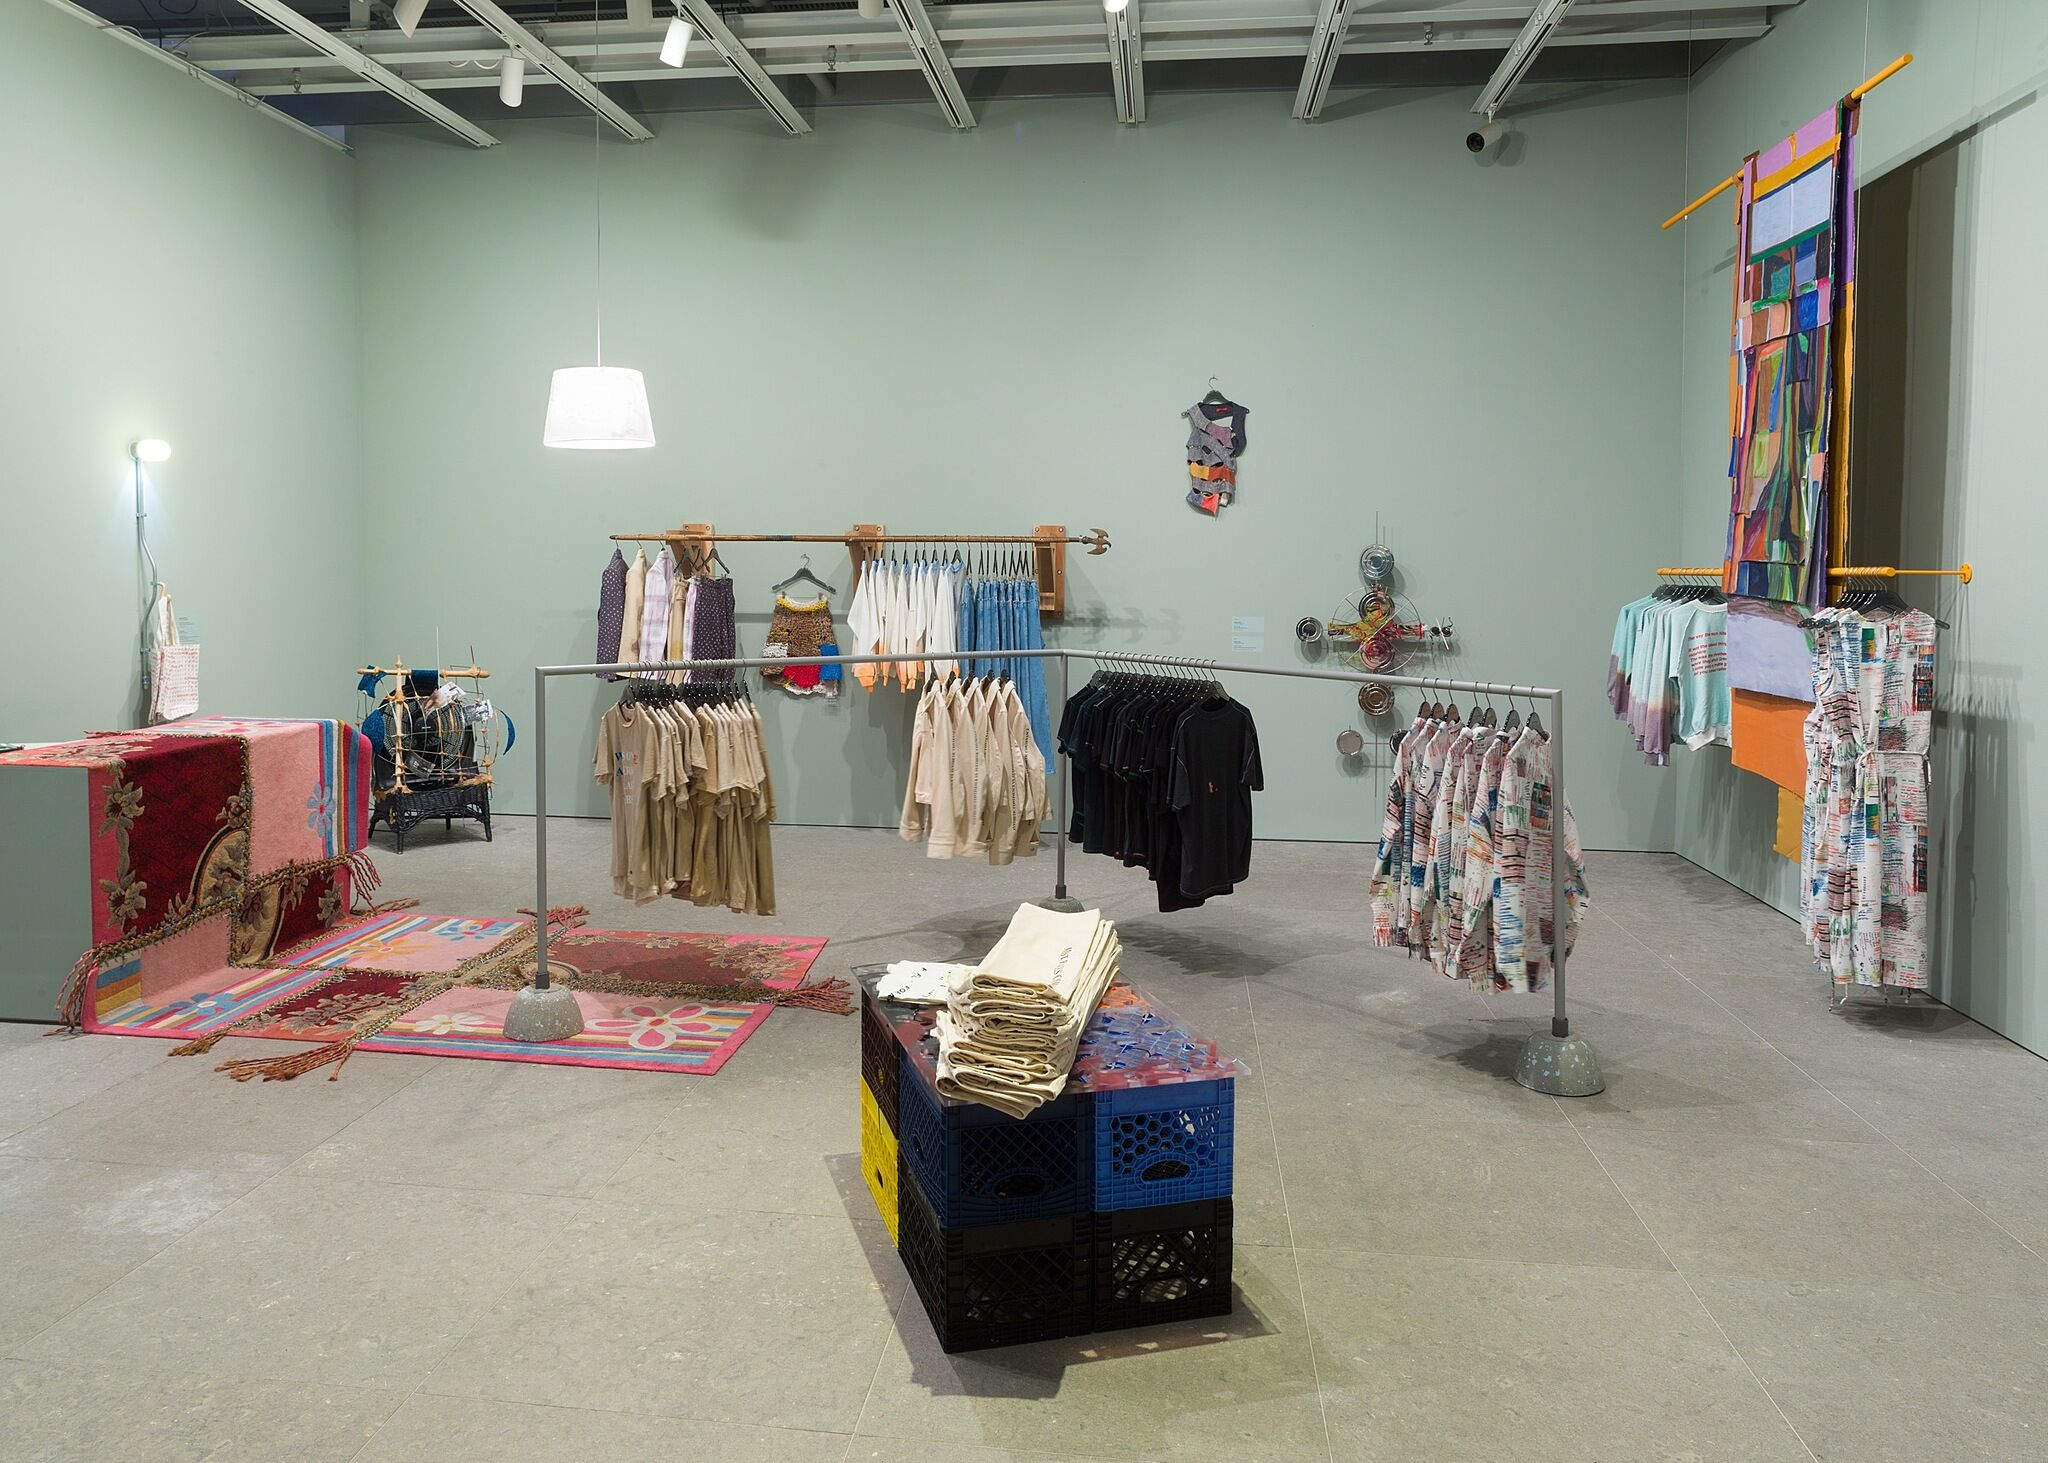 A gallery space filled to look like a retail store.